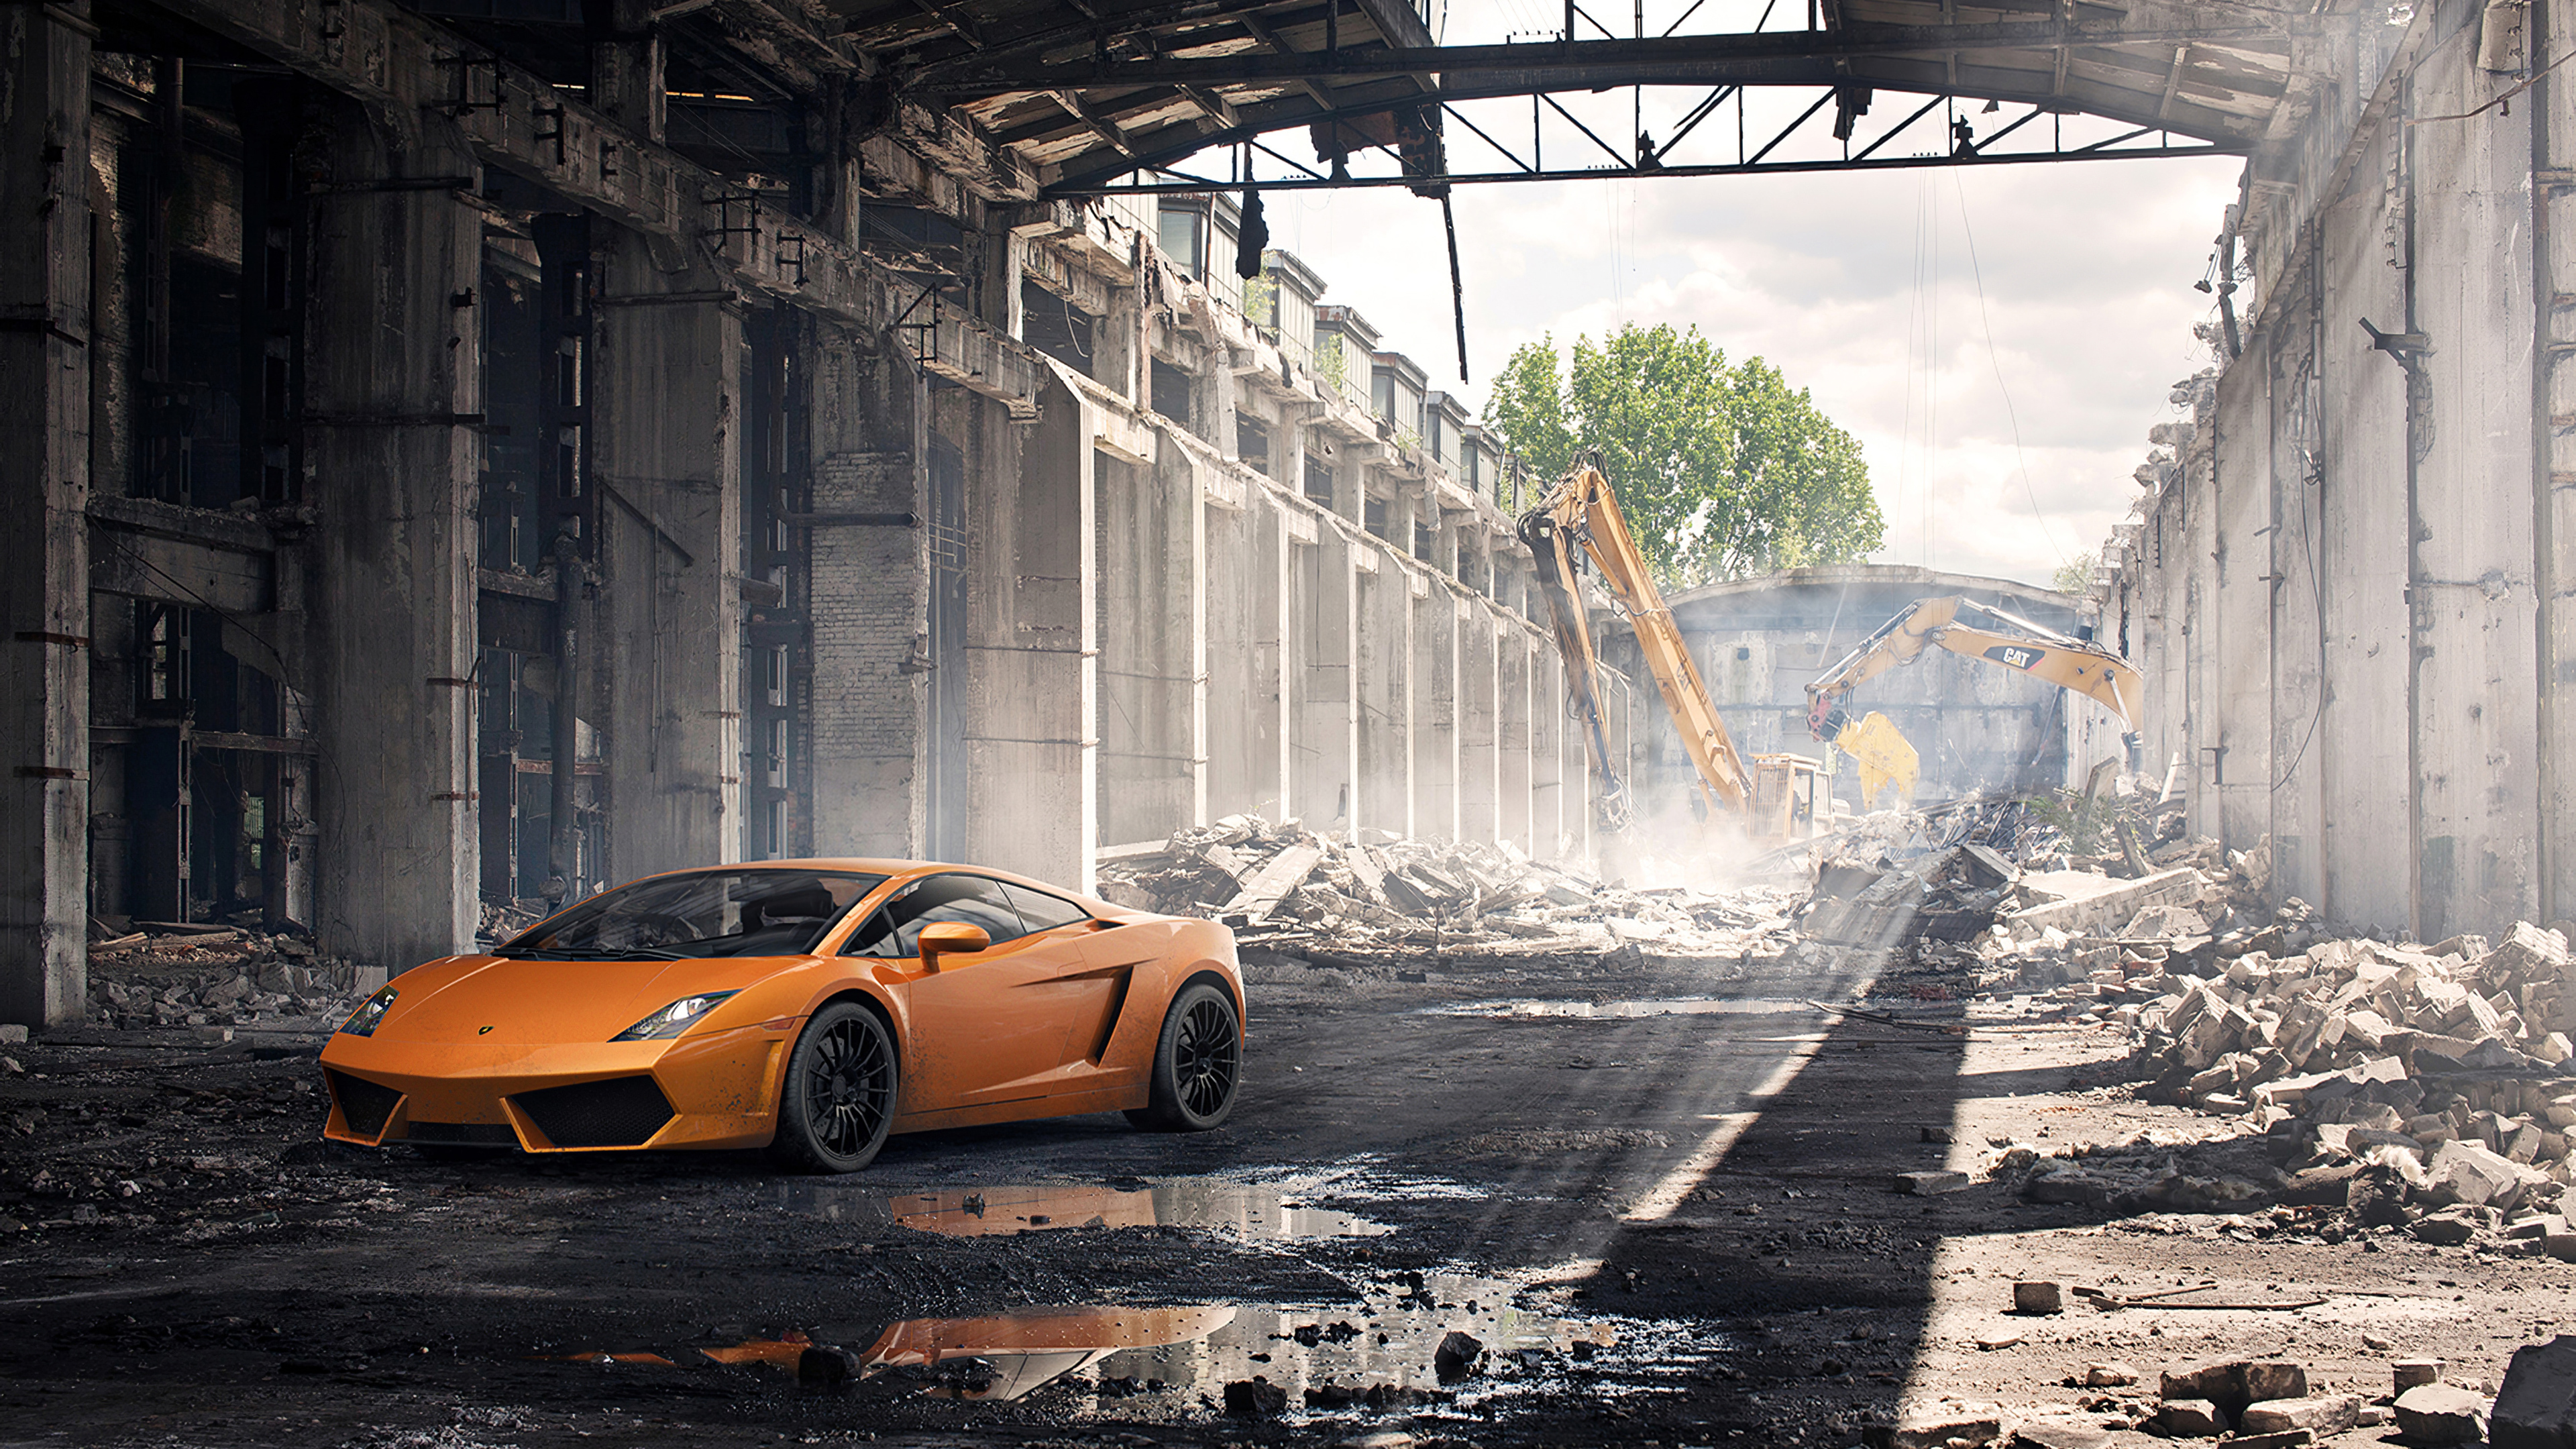 lamborghini-somewhere-h0.jpg